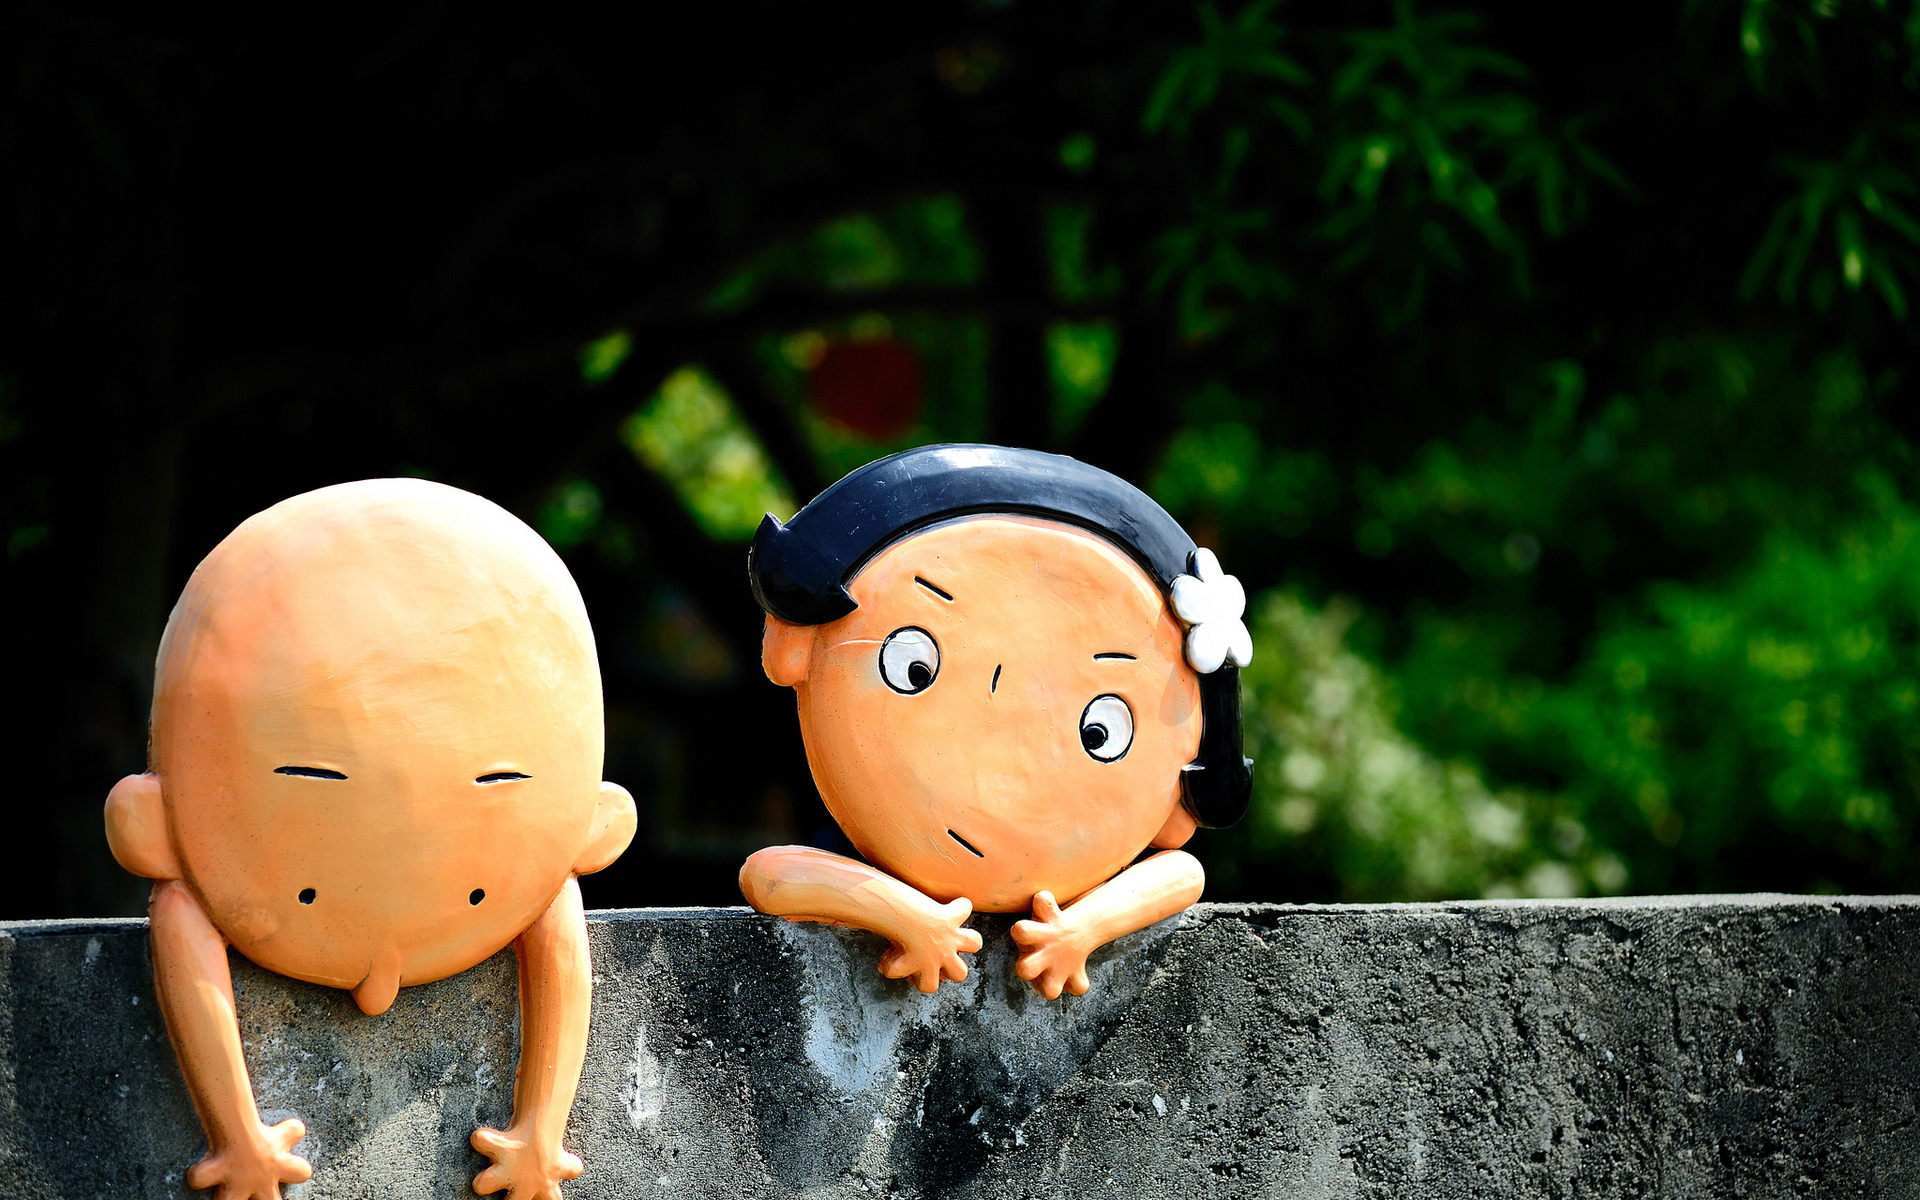 Humor funny children dolls photography cute faces eyes ...